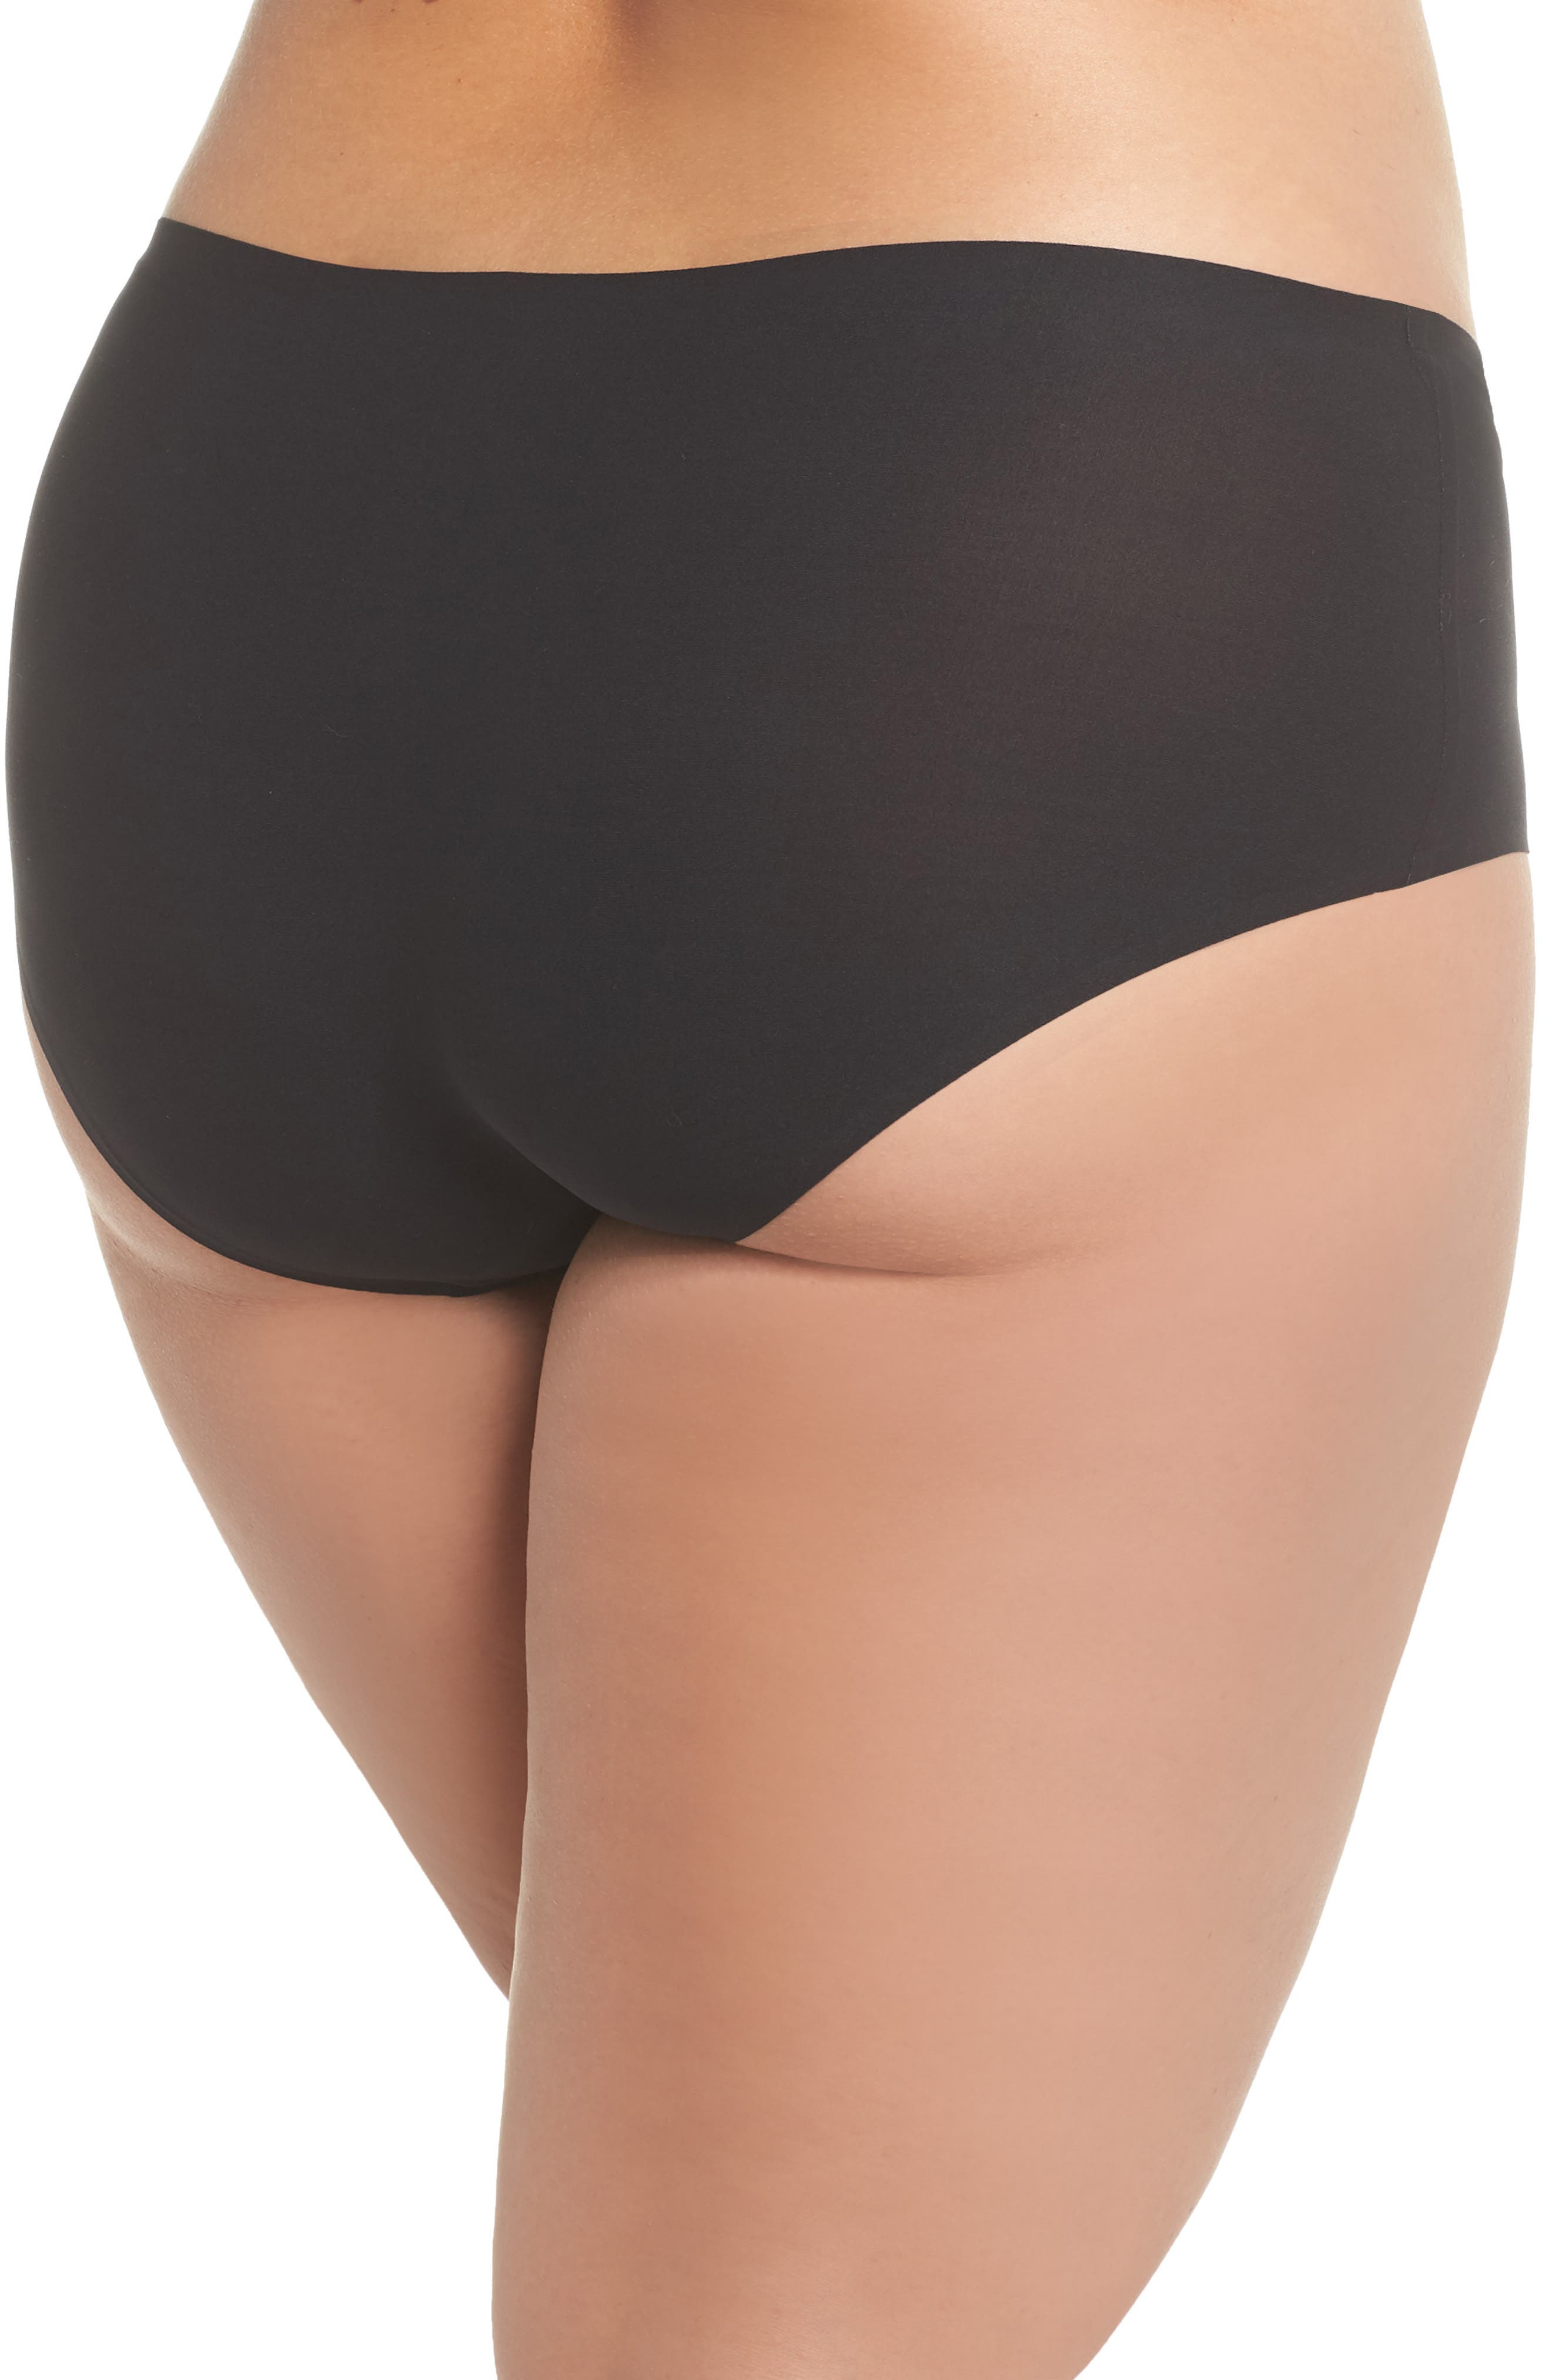 Soft Stretch Seamless Hipster Panties,                             Alternate thumbnail 2, color,                             BLACK